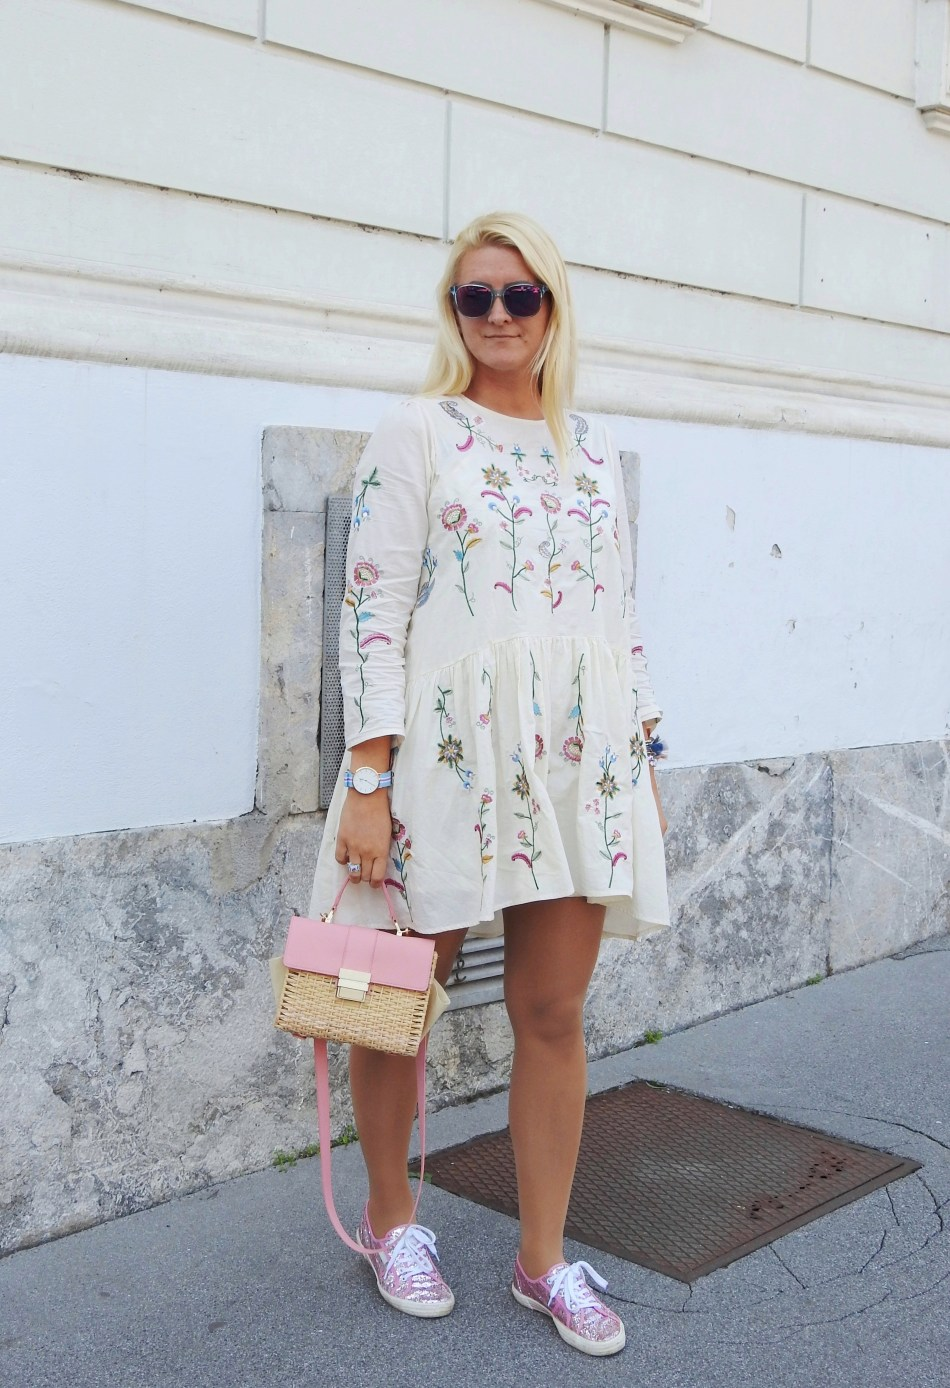 Embroidered-Dress-white-Floral-Print-Superga-Glitter-Sneakers-carrieslifestyle-Tamara-Prutsch